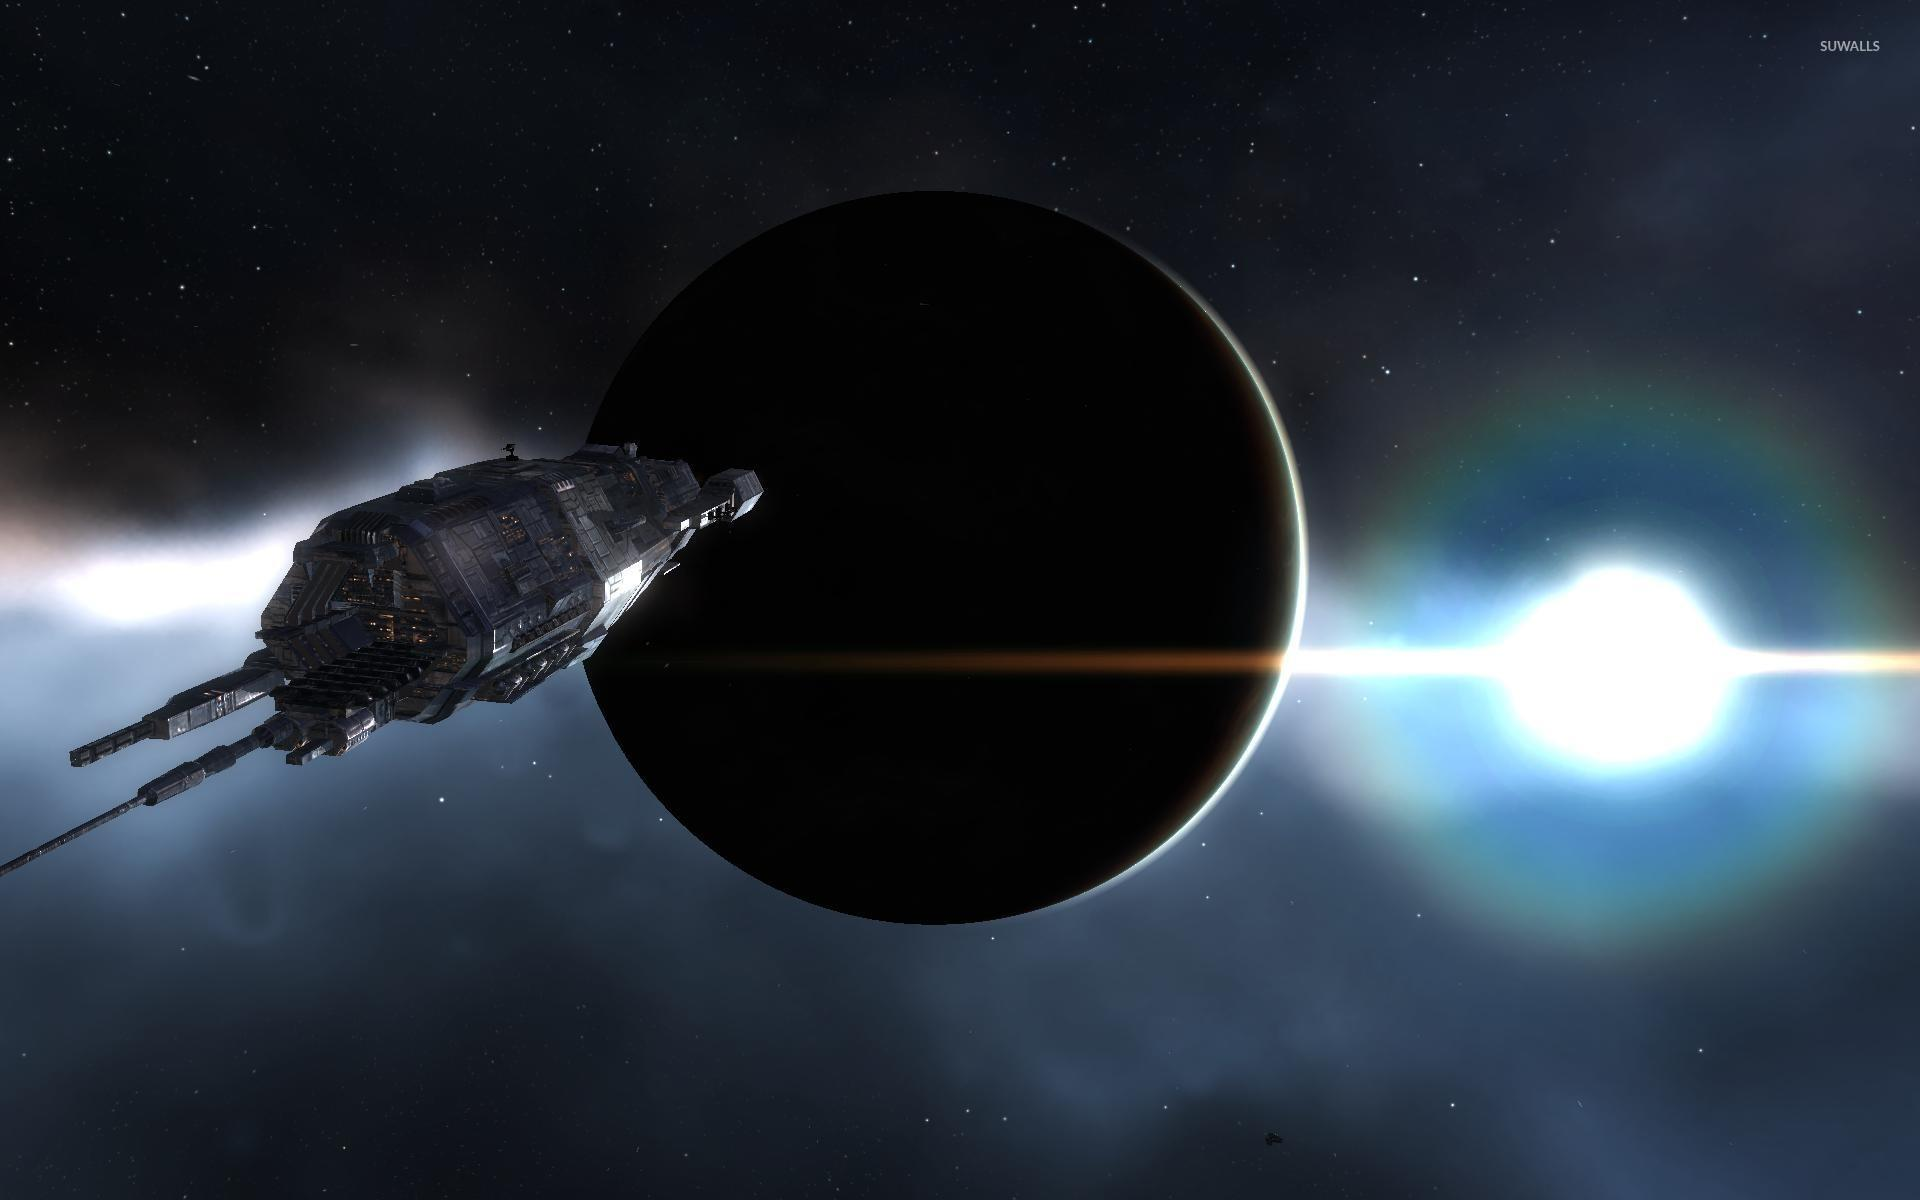 tres 2b the darkest planet in space that reflects almost no light